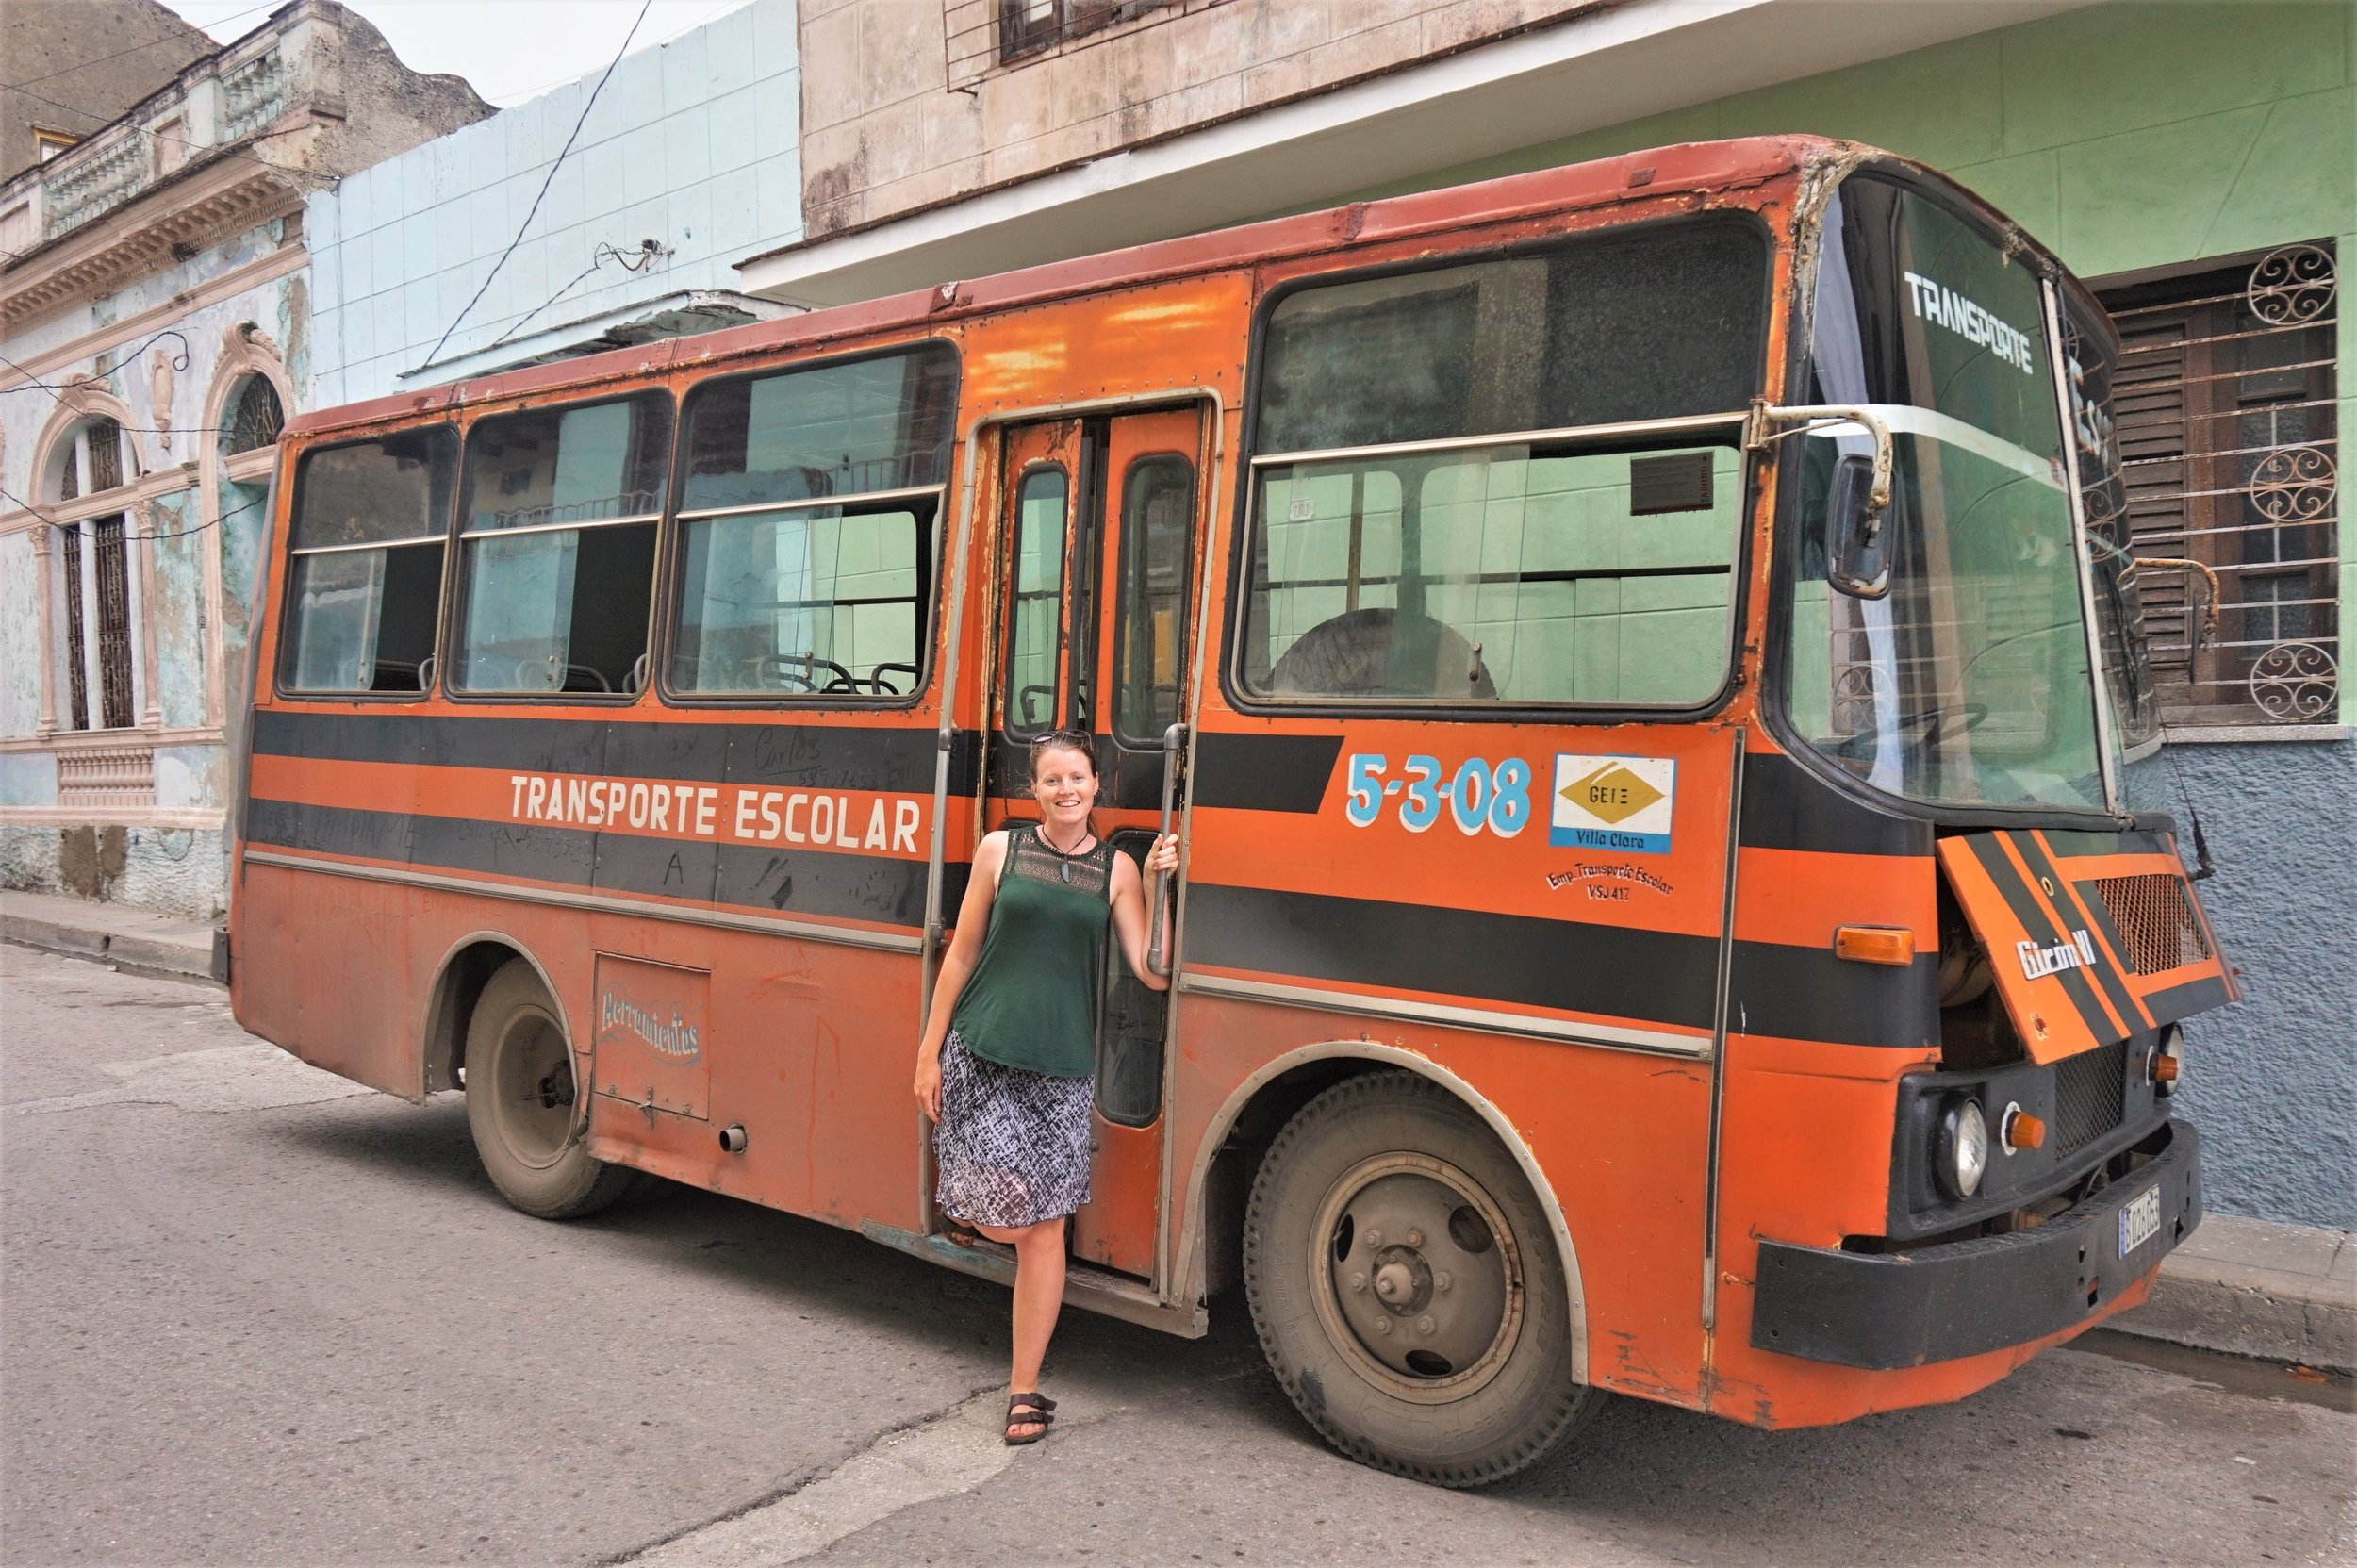 Shared taxis and buses will be your choice of transport when backpacking in Cuba on a budget.